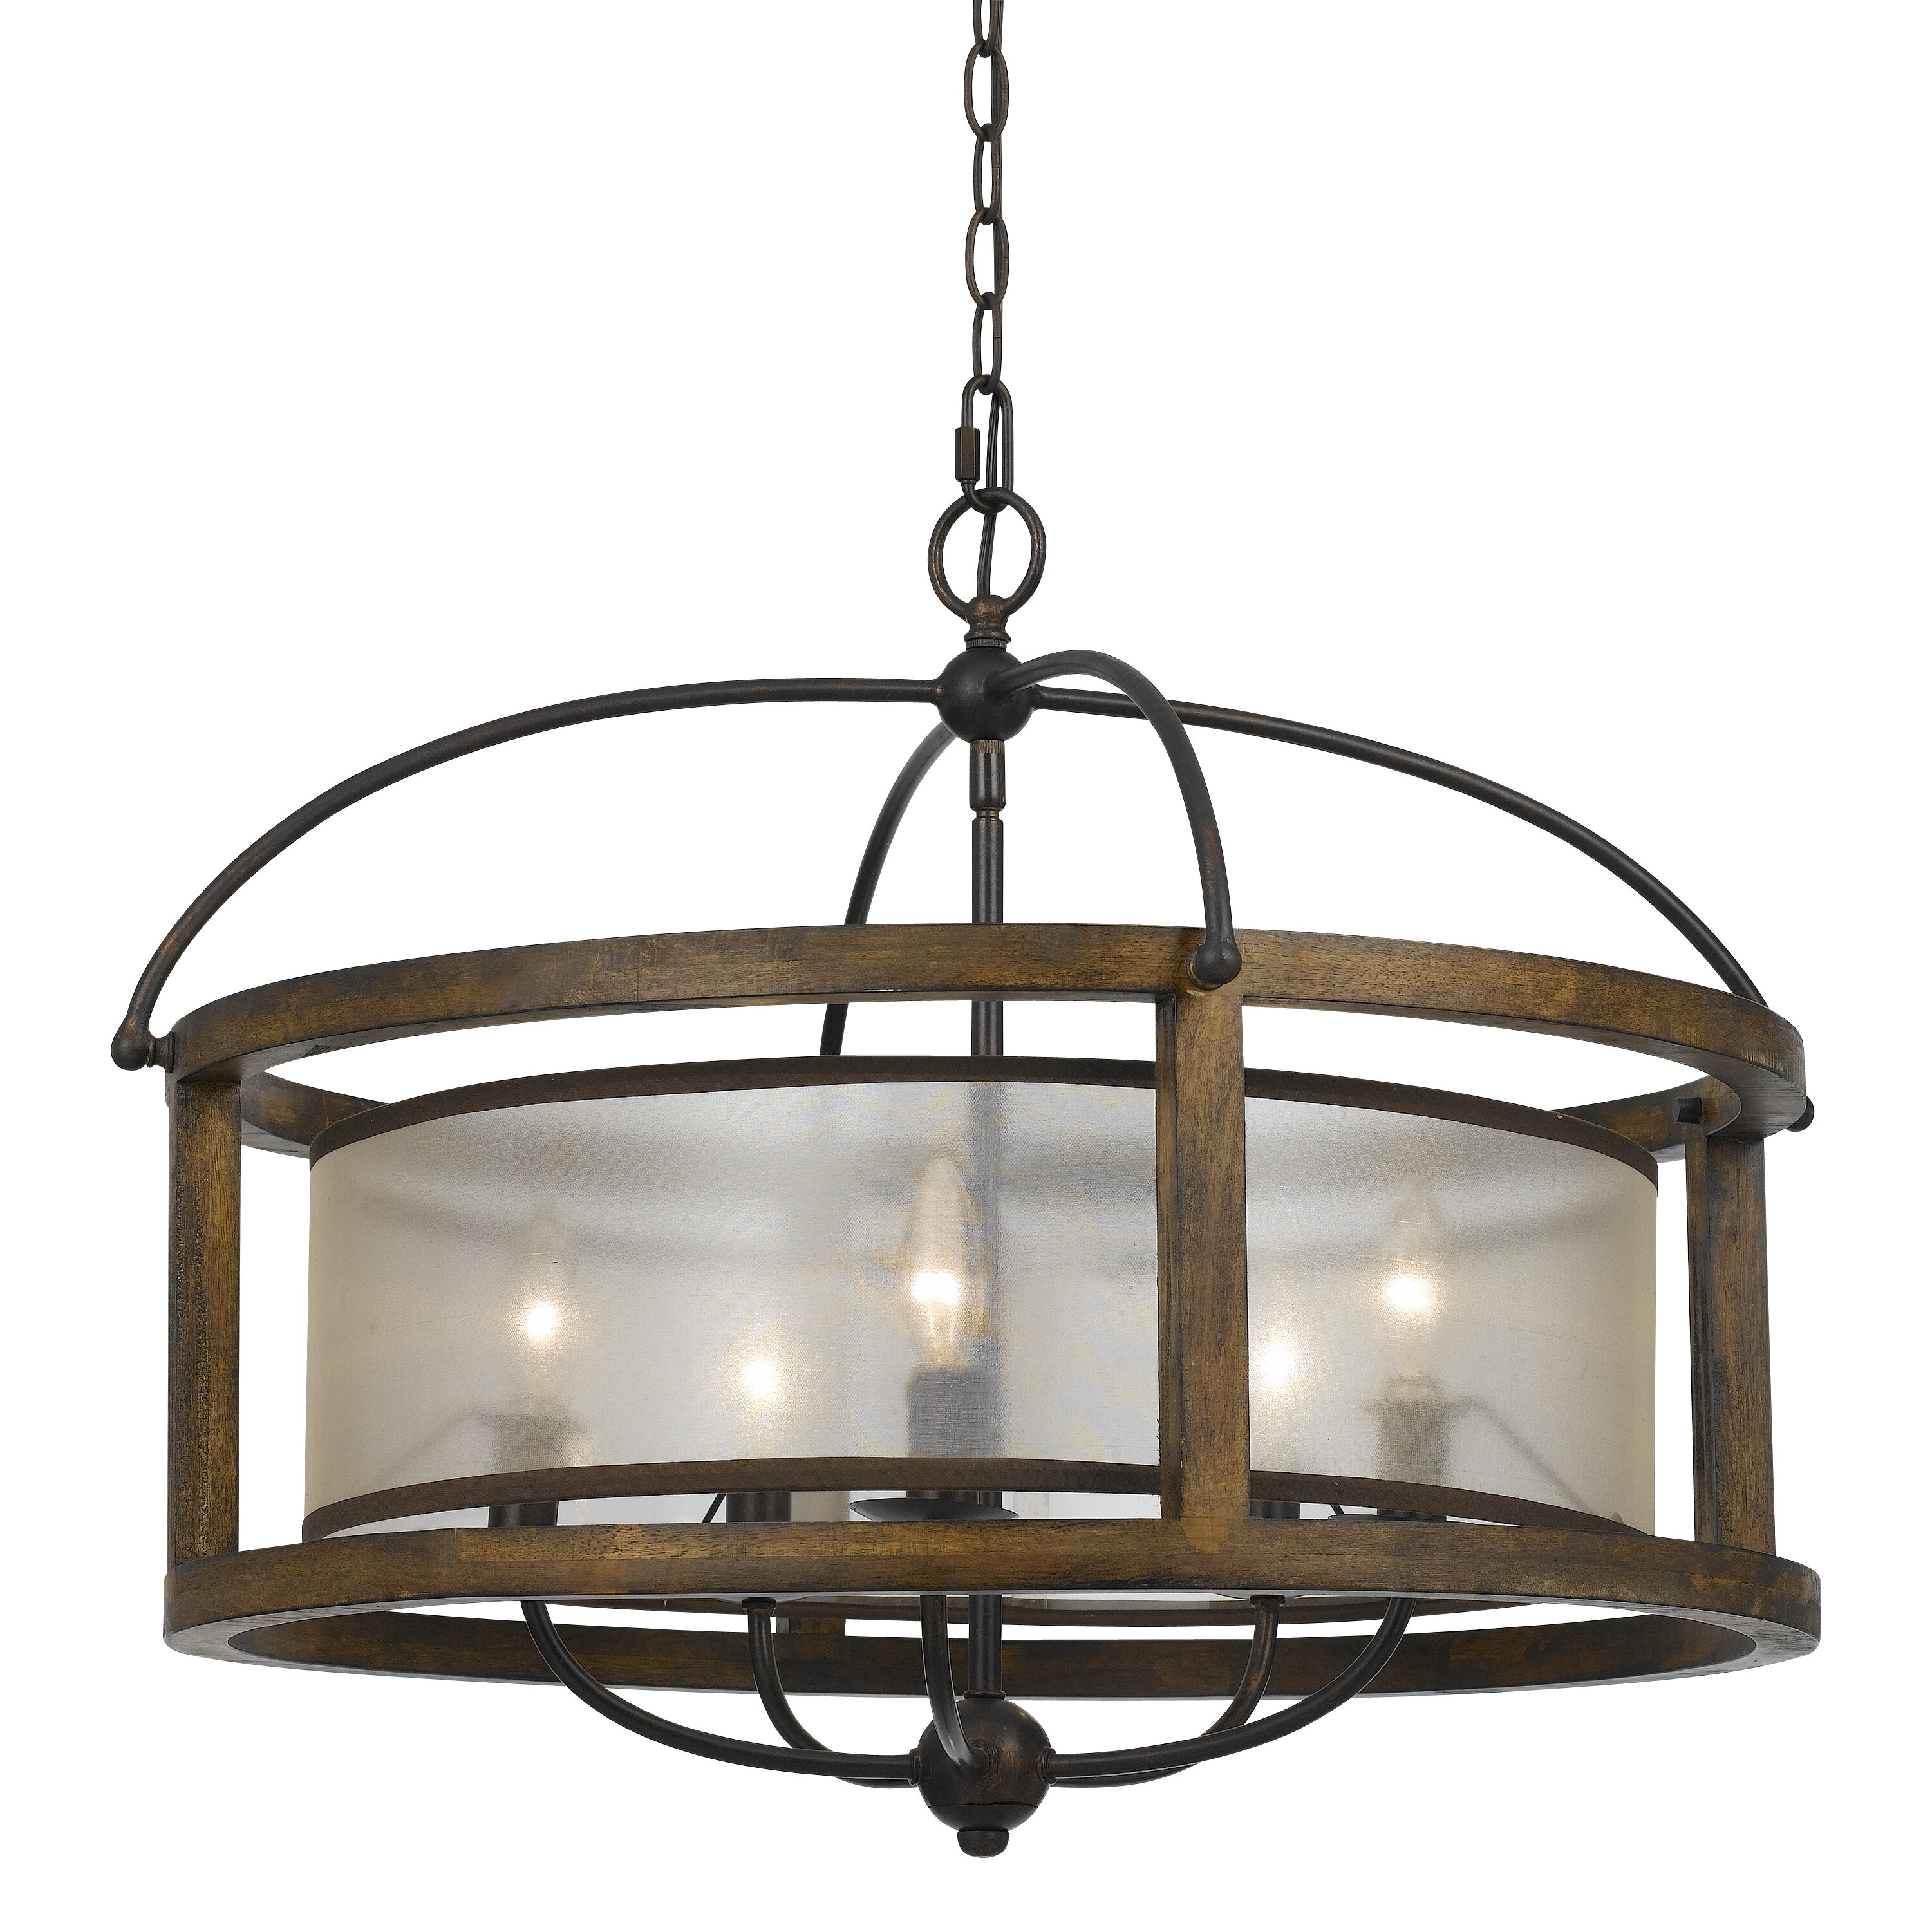 cal lighting mission 5 light drum chandelier chandeliers pendants wayfair drum lighting